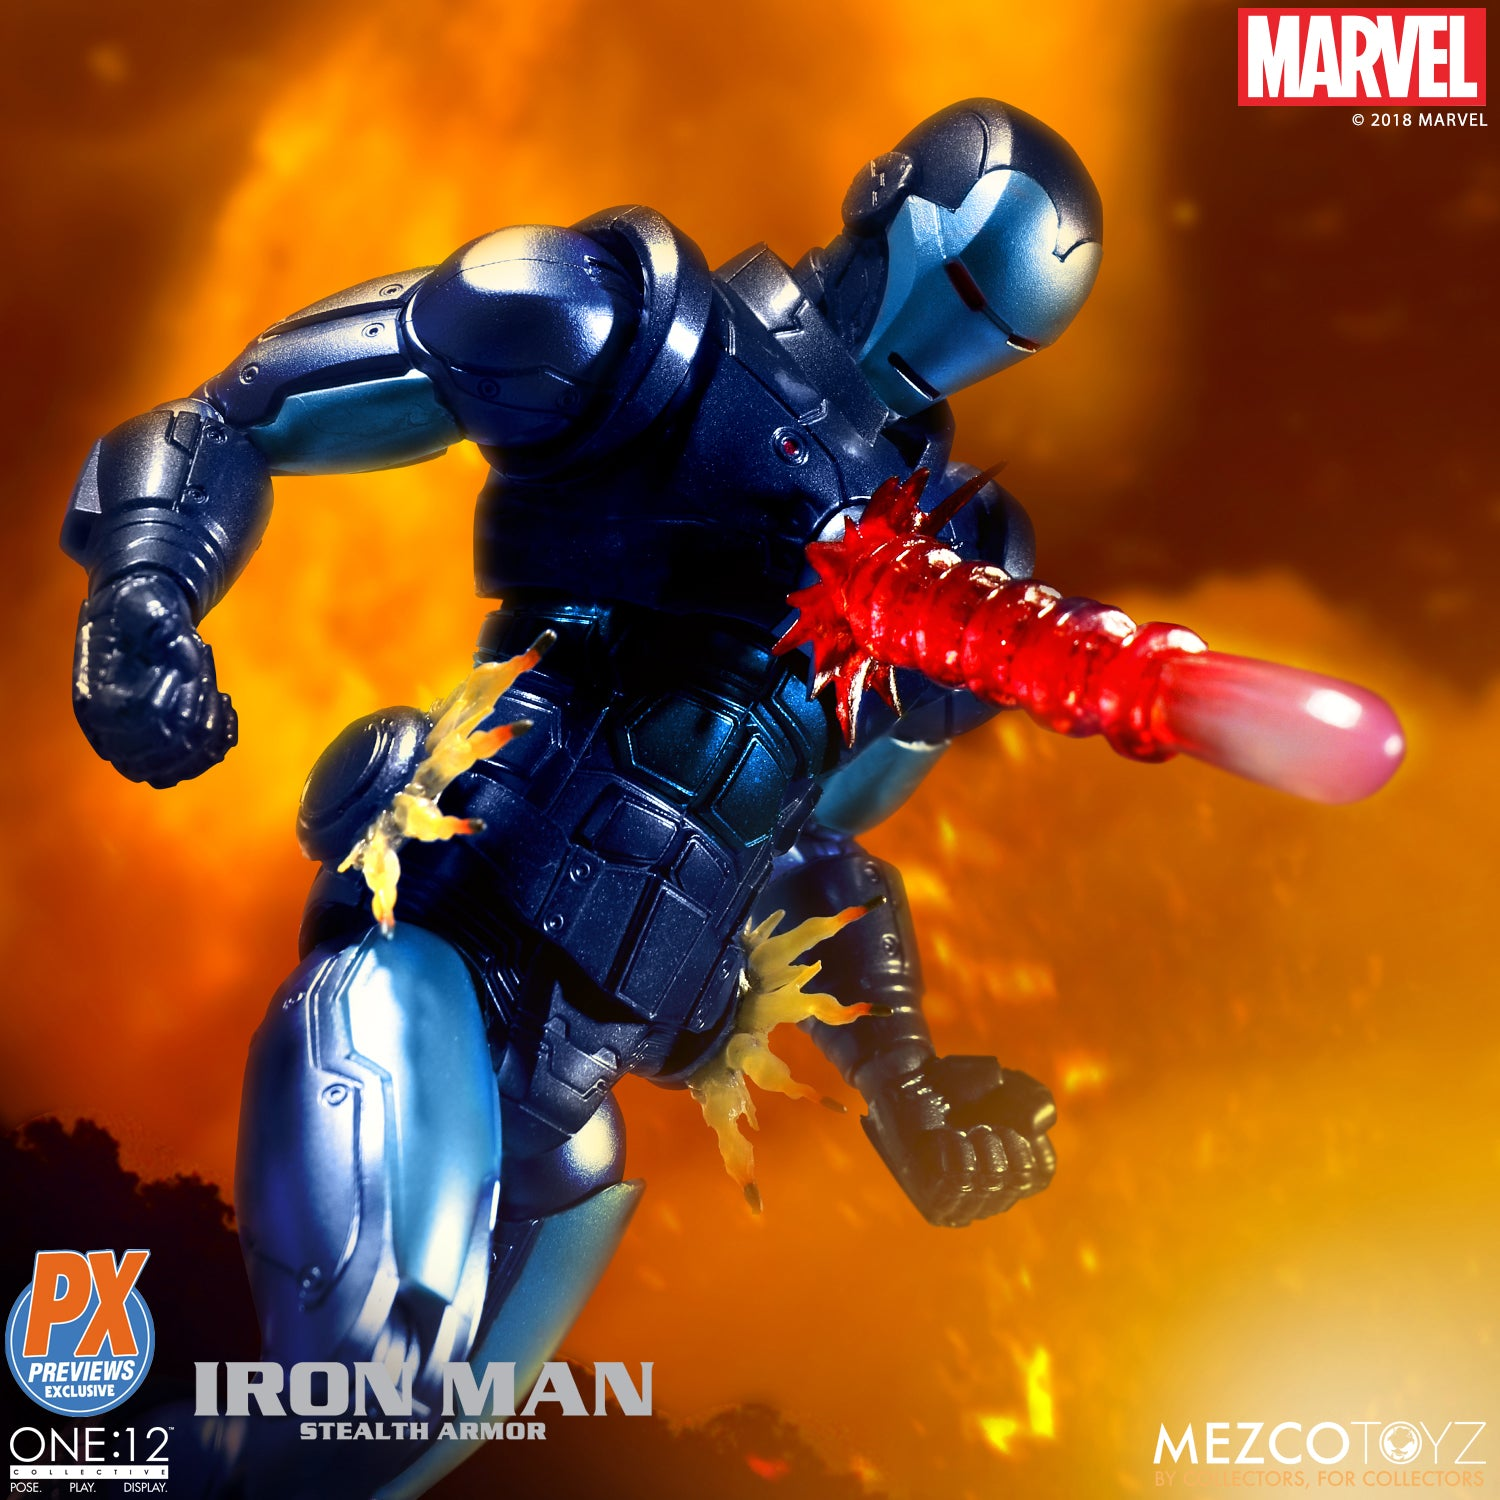 Mezco - One:12 Collective - Iron Man (Stealth Armor) Previews Exclusive